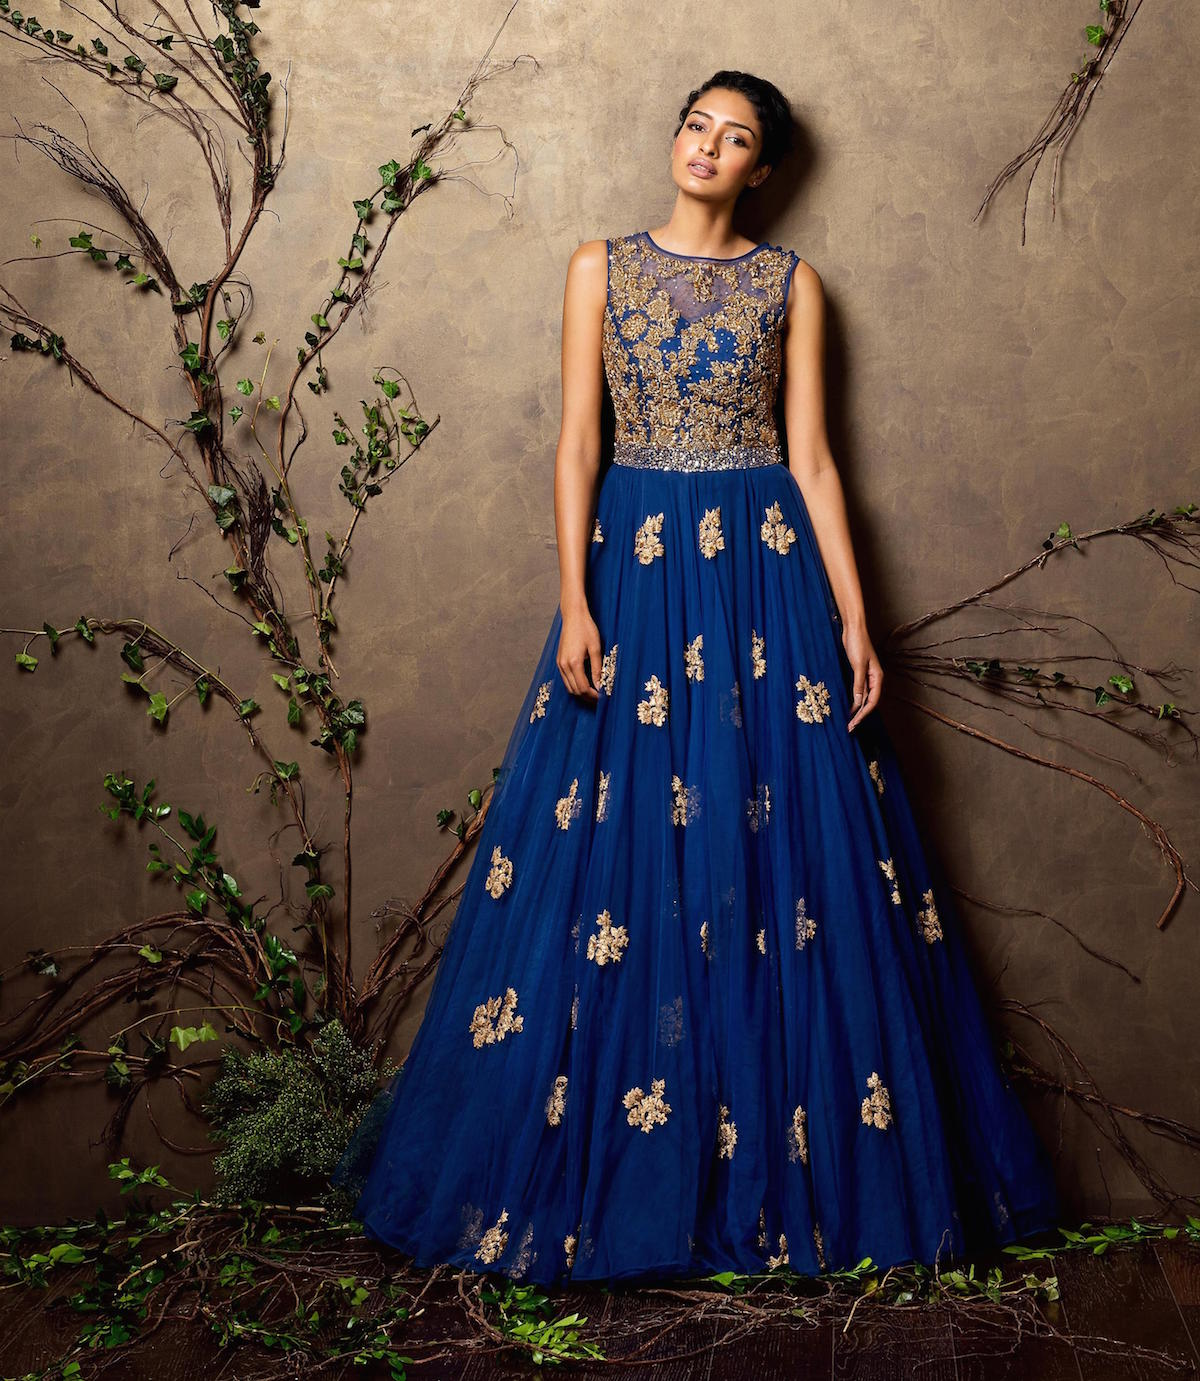 14 Favourite Finds For Brides! From Shyamal & Bhumika's